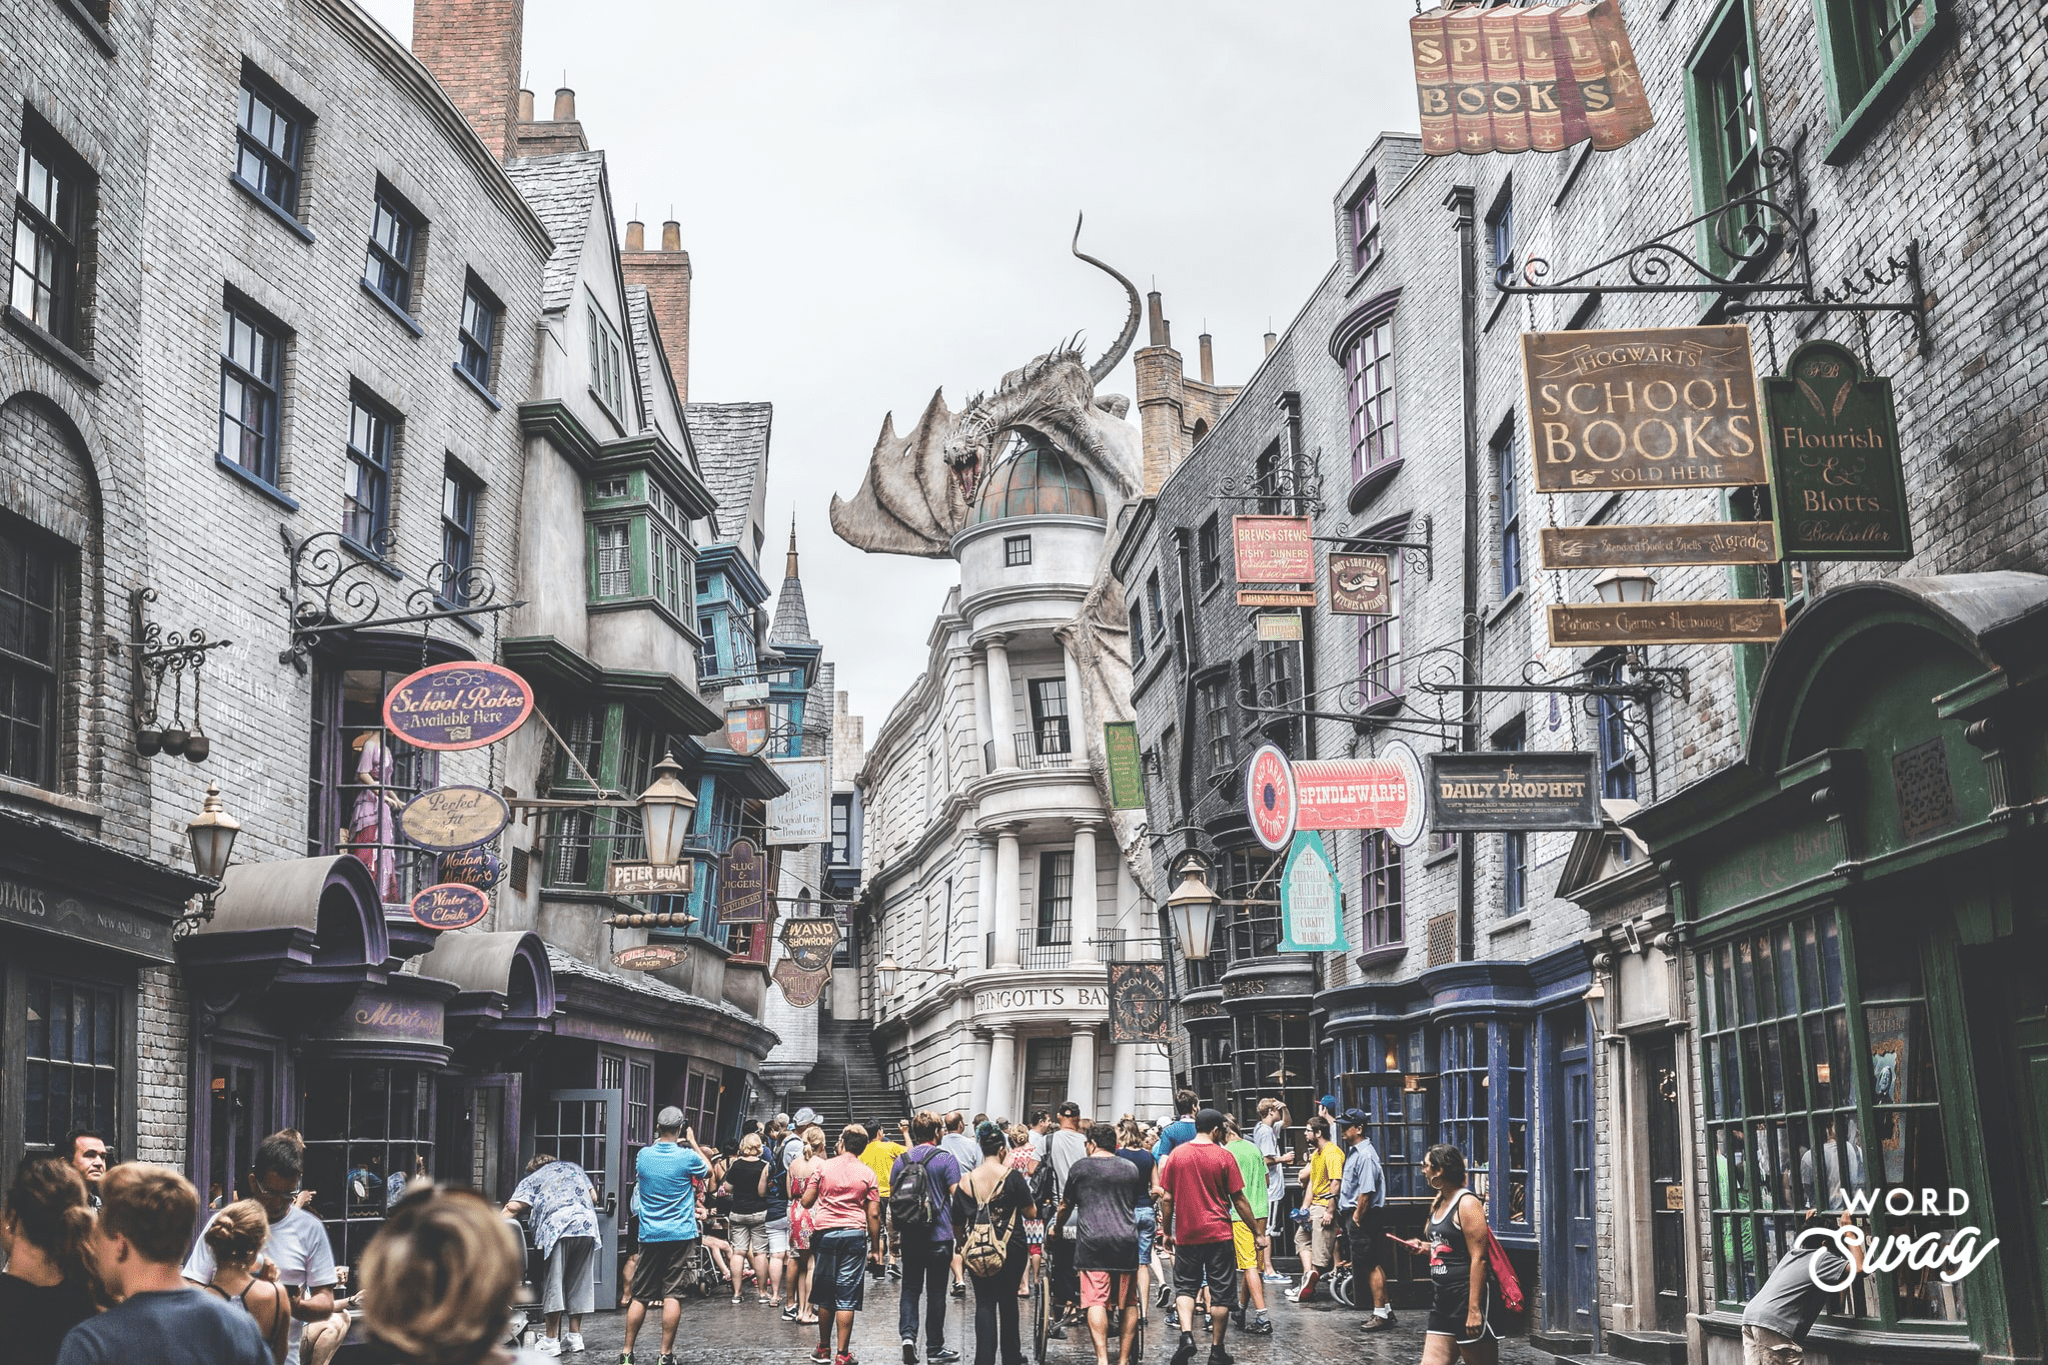 Diagon Alley Wizarding World of Harry Potter